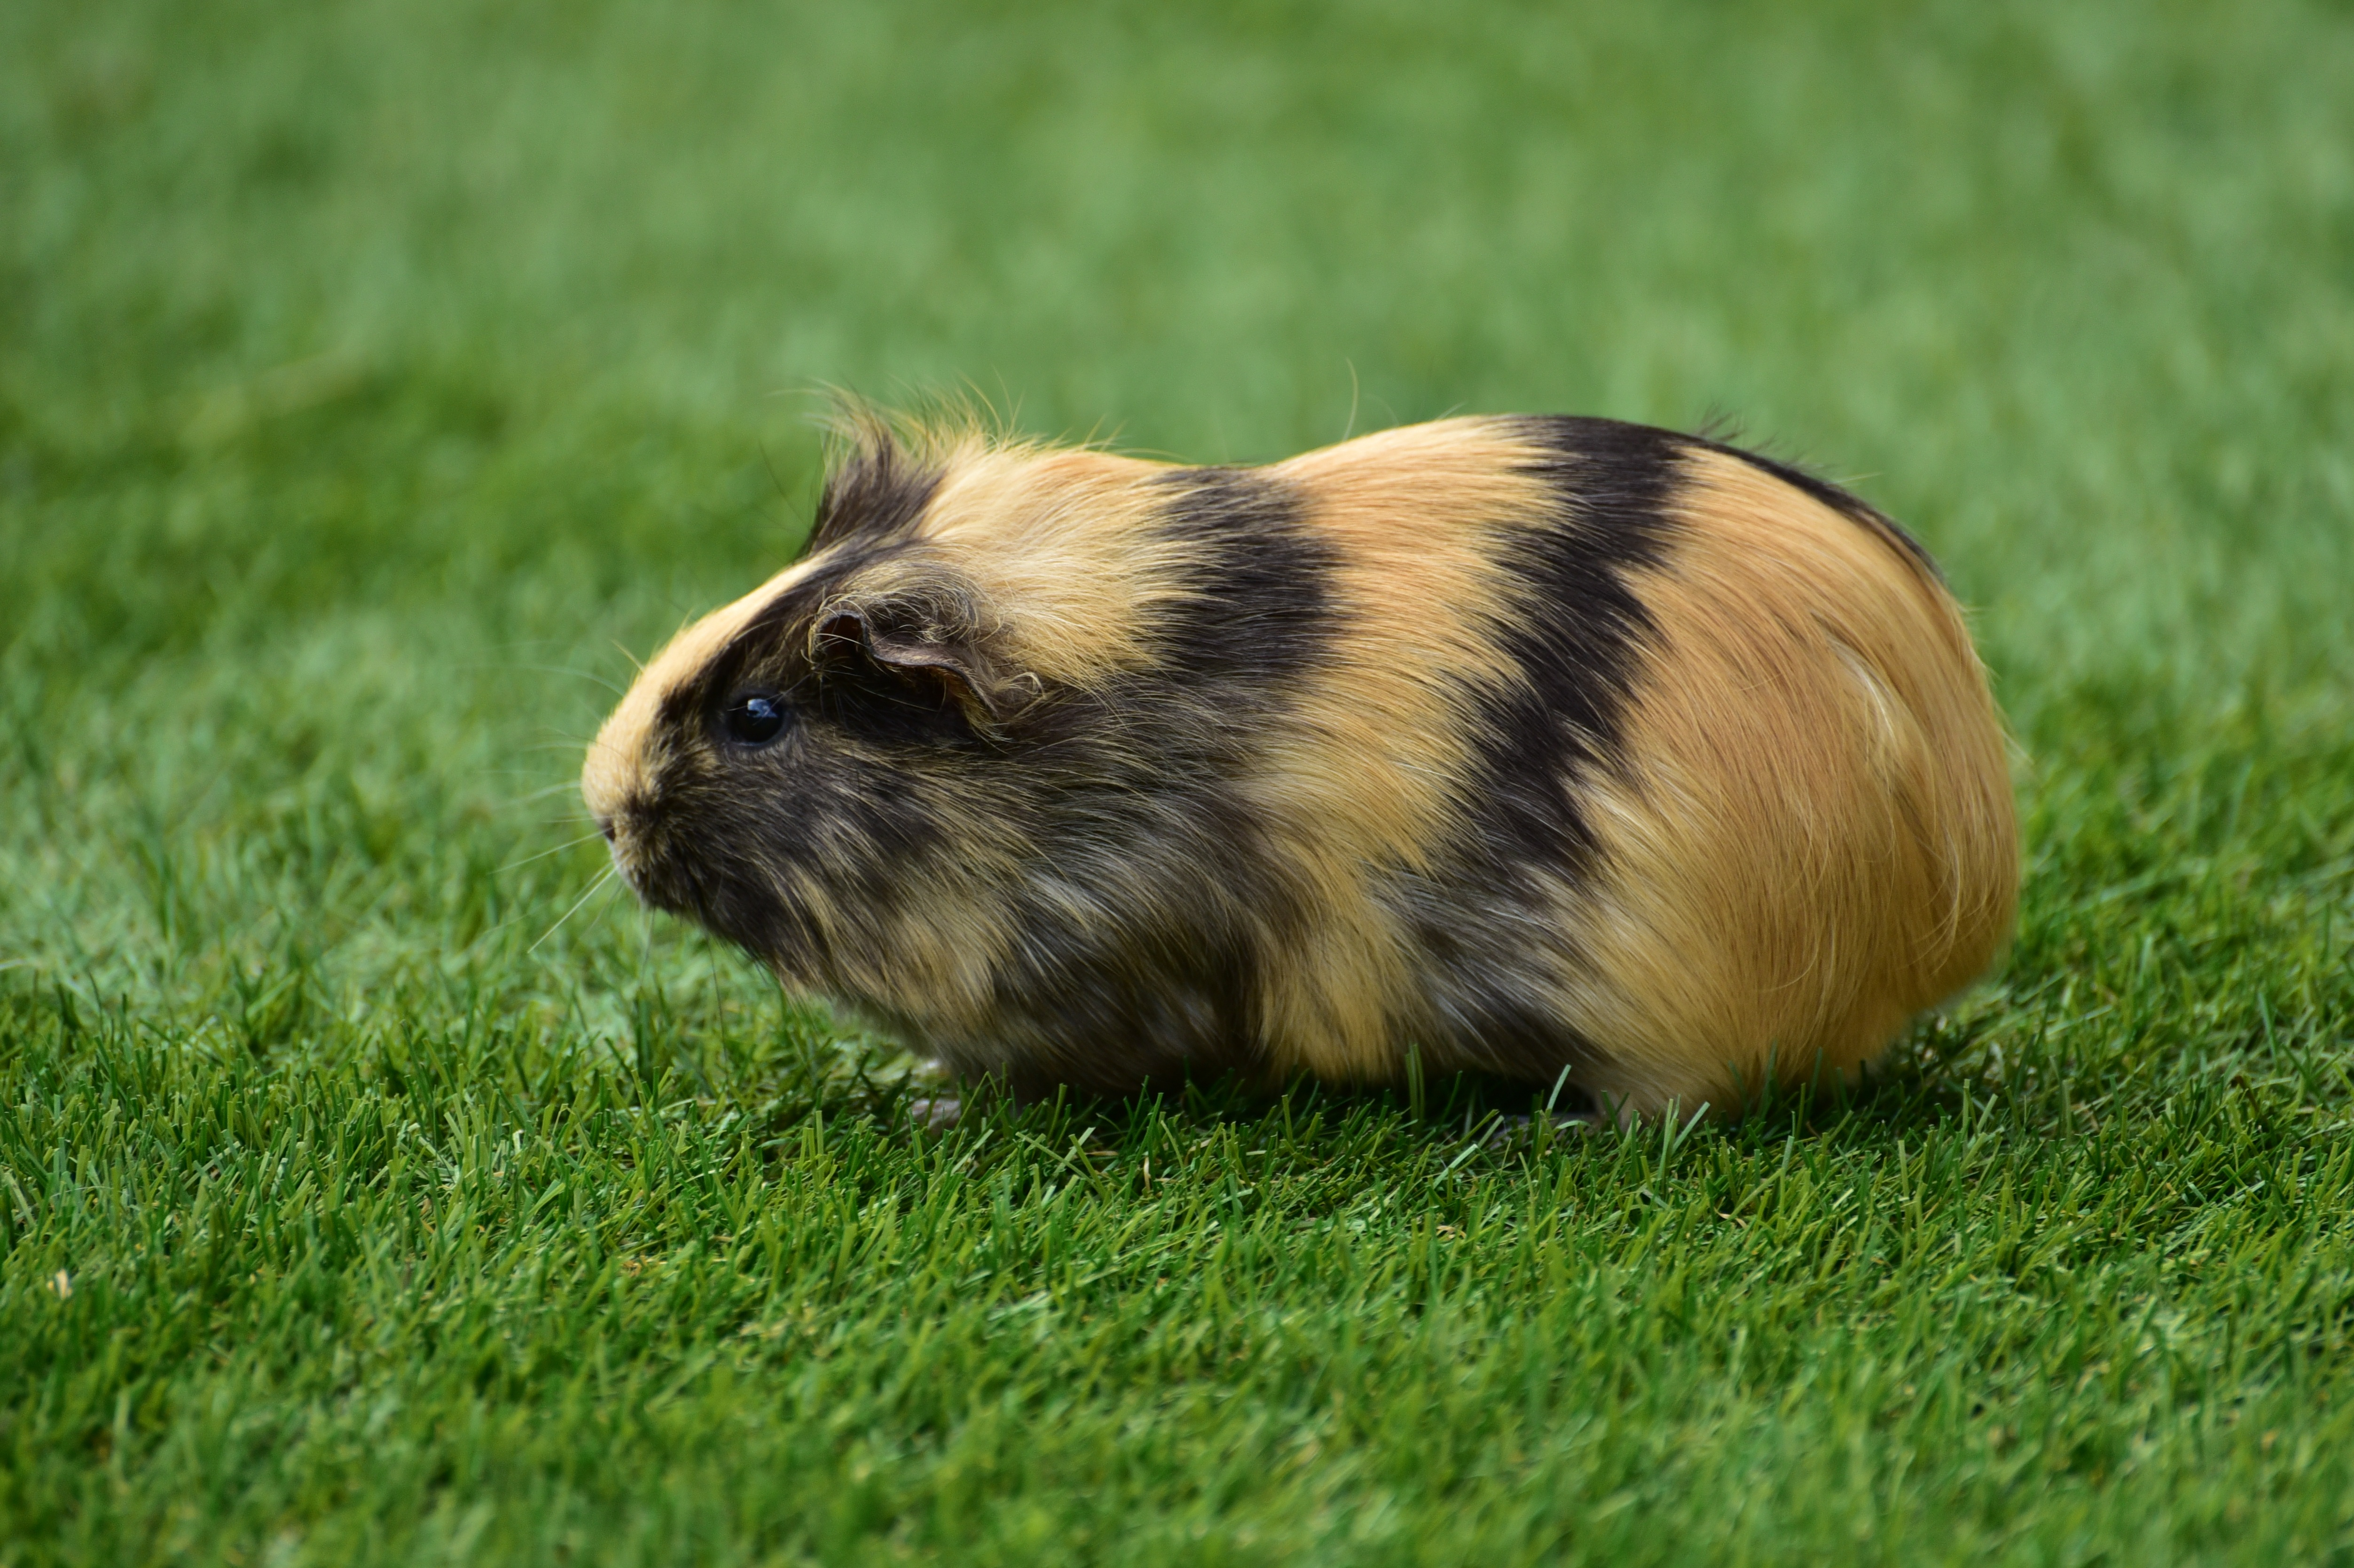 112705 download wallpaper Animals, Guinea Pig, Grass, Rodent screensavers and pictures for free